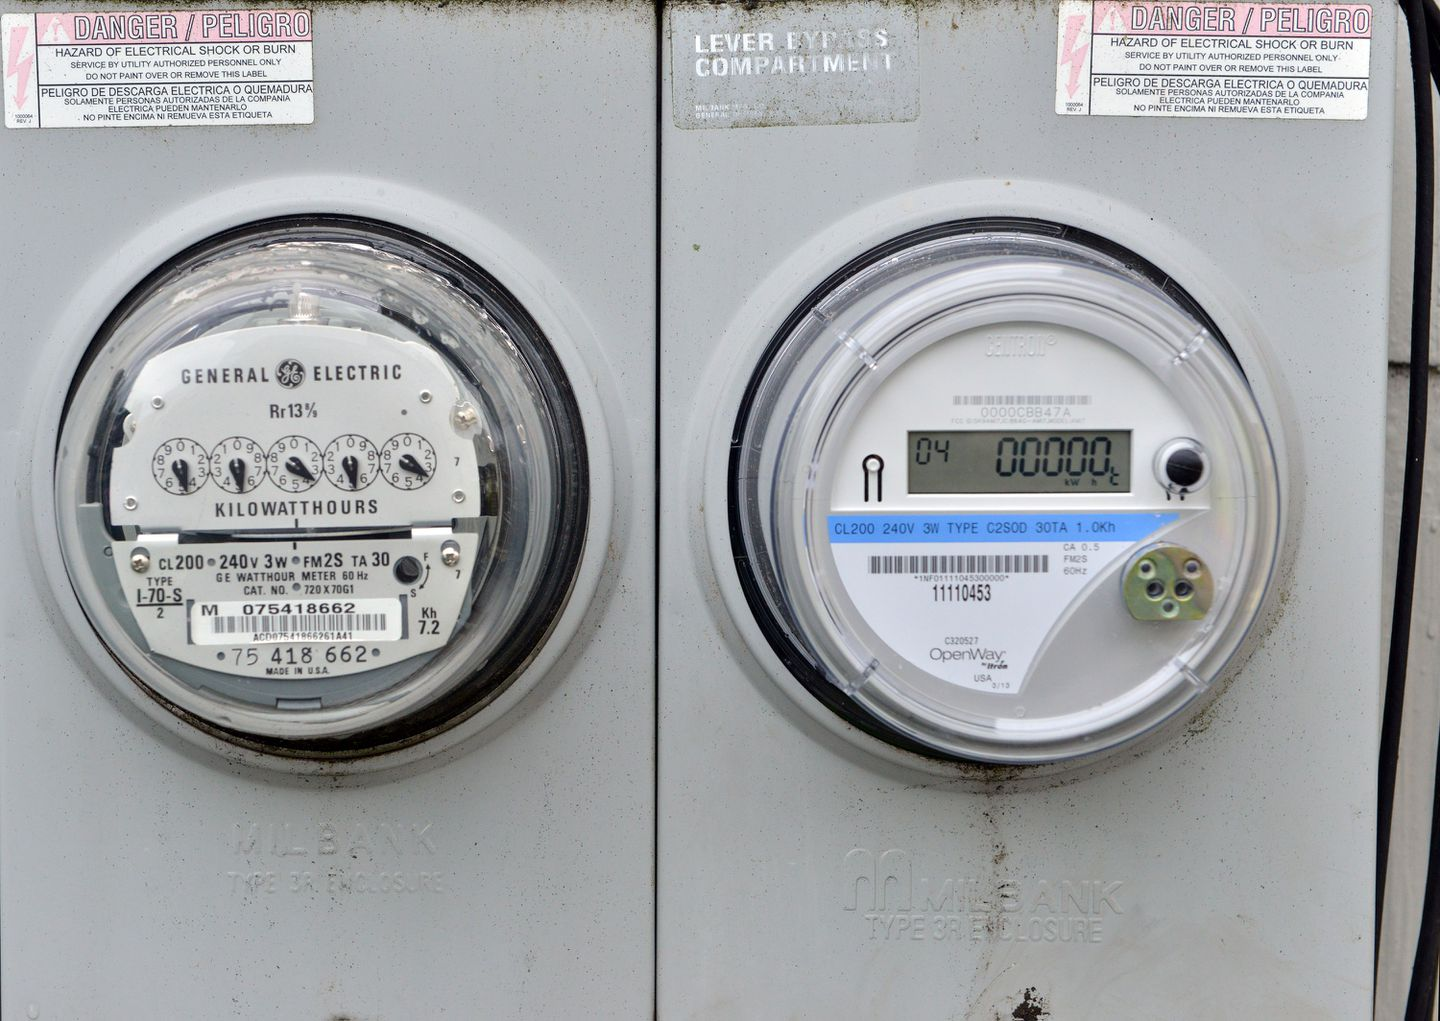 A Smart Meter Right Allows Utilities To Monitor And Manage Electricity Consumption